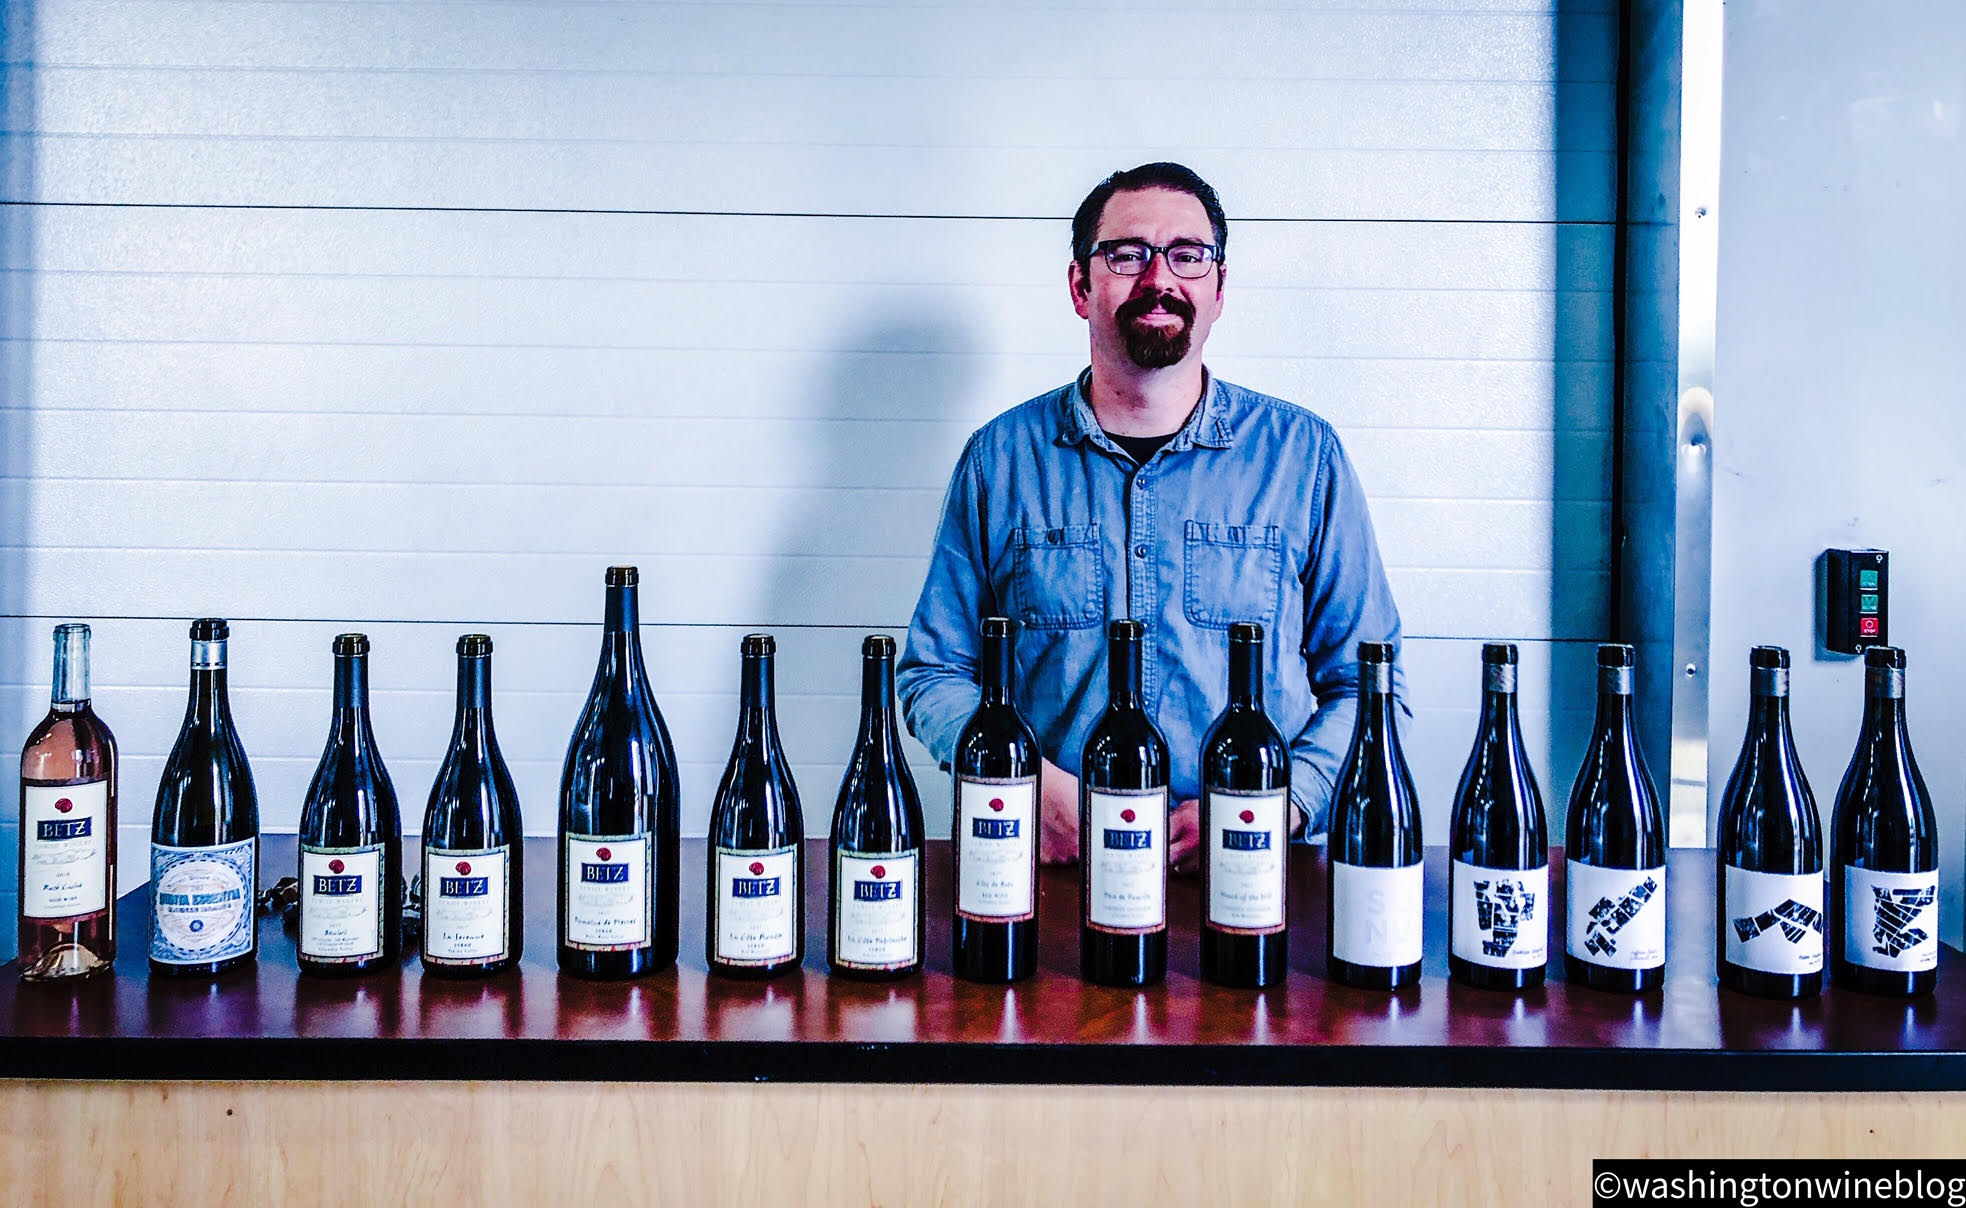 Louis Skinner has crafted an outstanding new lineup of wines for Betz Family Winery.